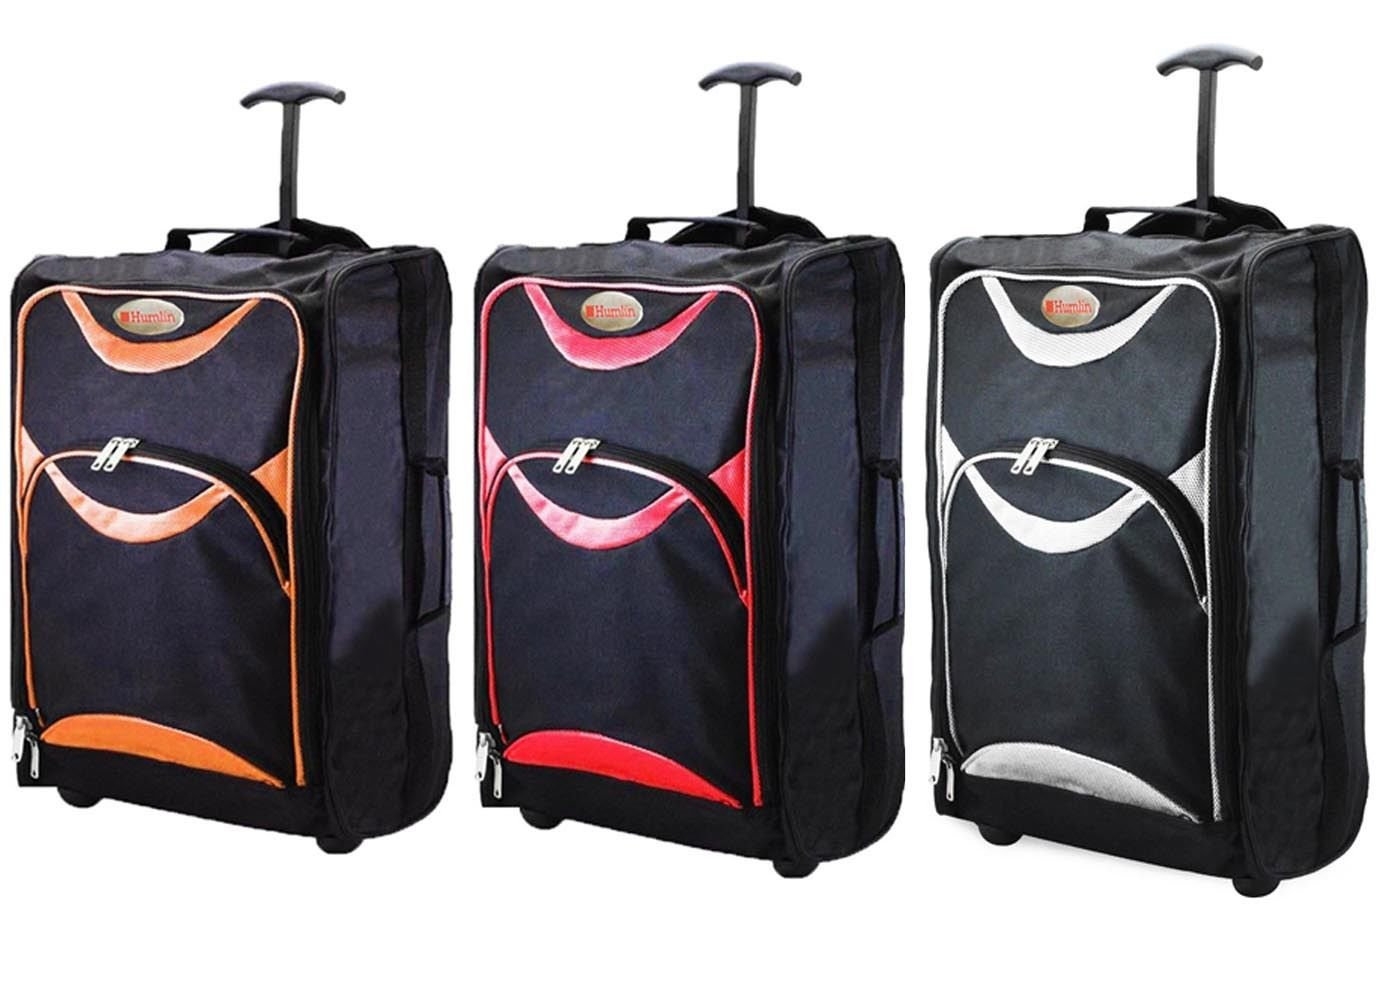 luggage lightweight second set ryanair maximum piece holdall cabins easyjet for bags super en carry wheel black bag product hand on approved cabin max aerolite suitcase suitcases b